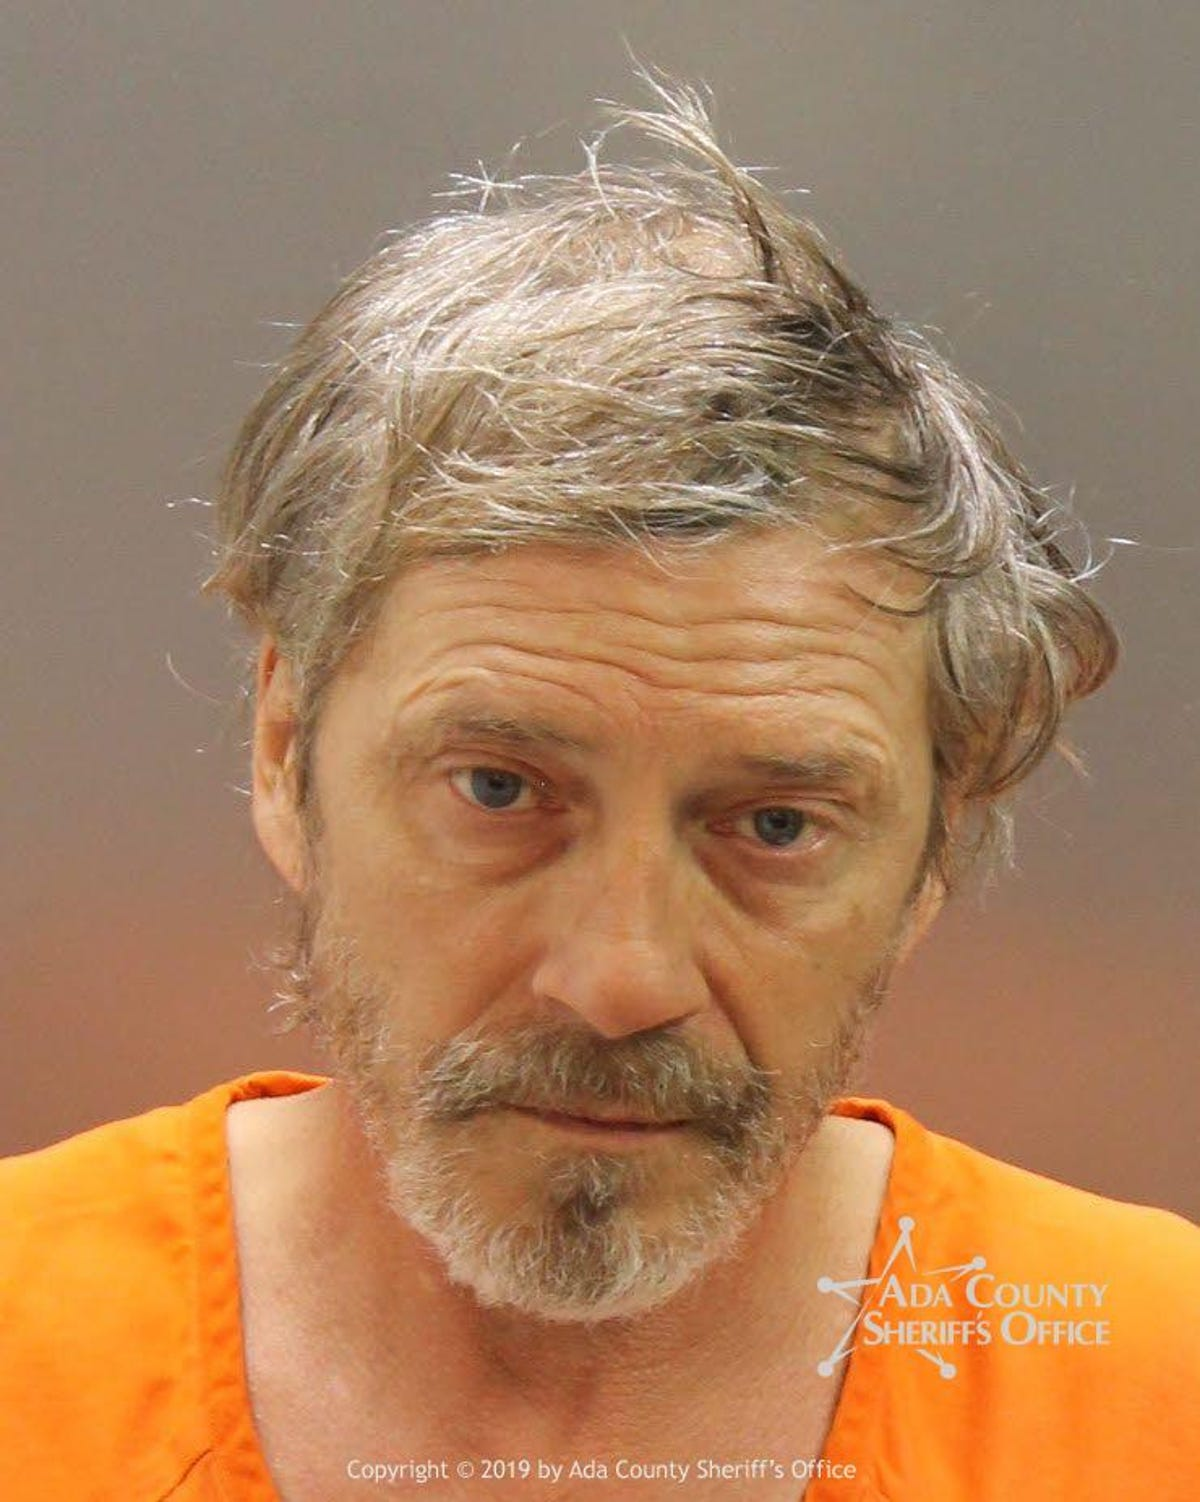 Man gets 25 years, plus 17 years, for cold case murders